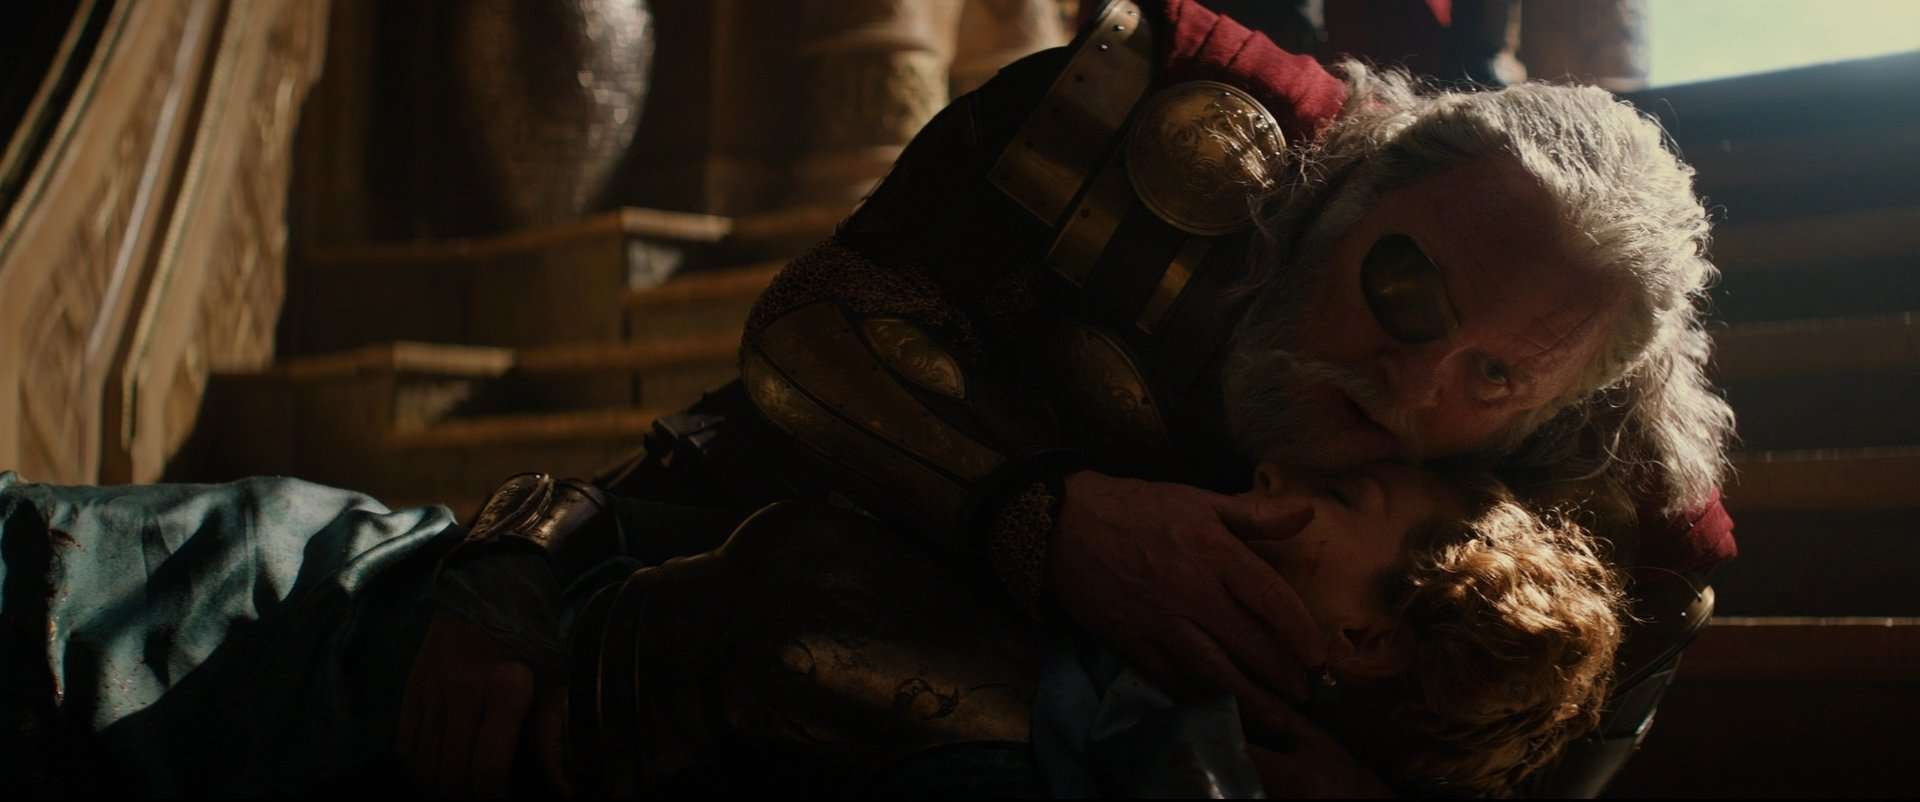 odin-is-distraught-after-frigga-dies.jpeg